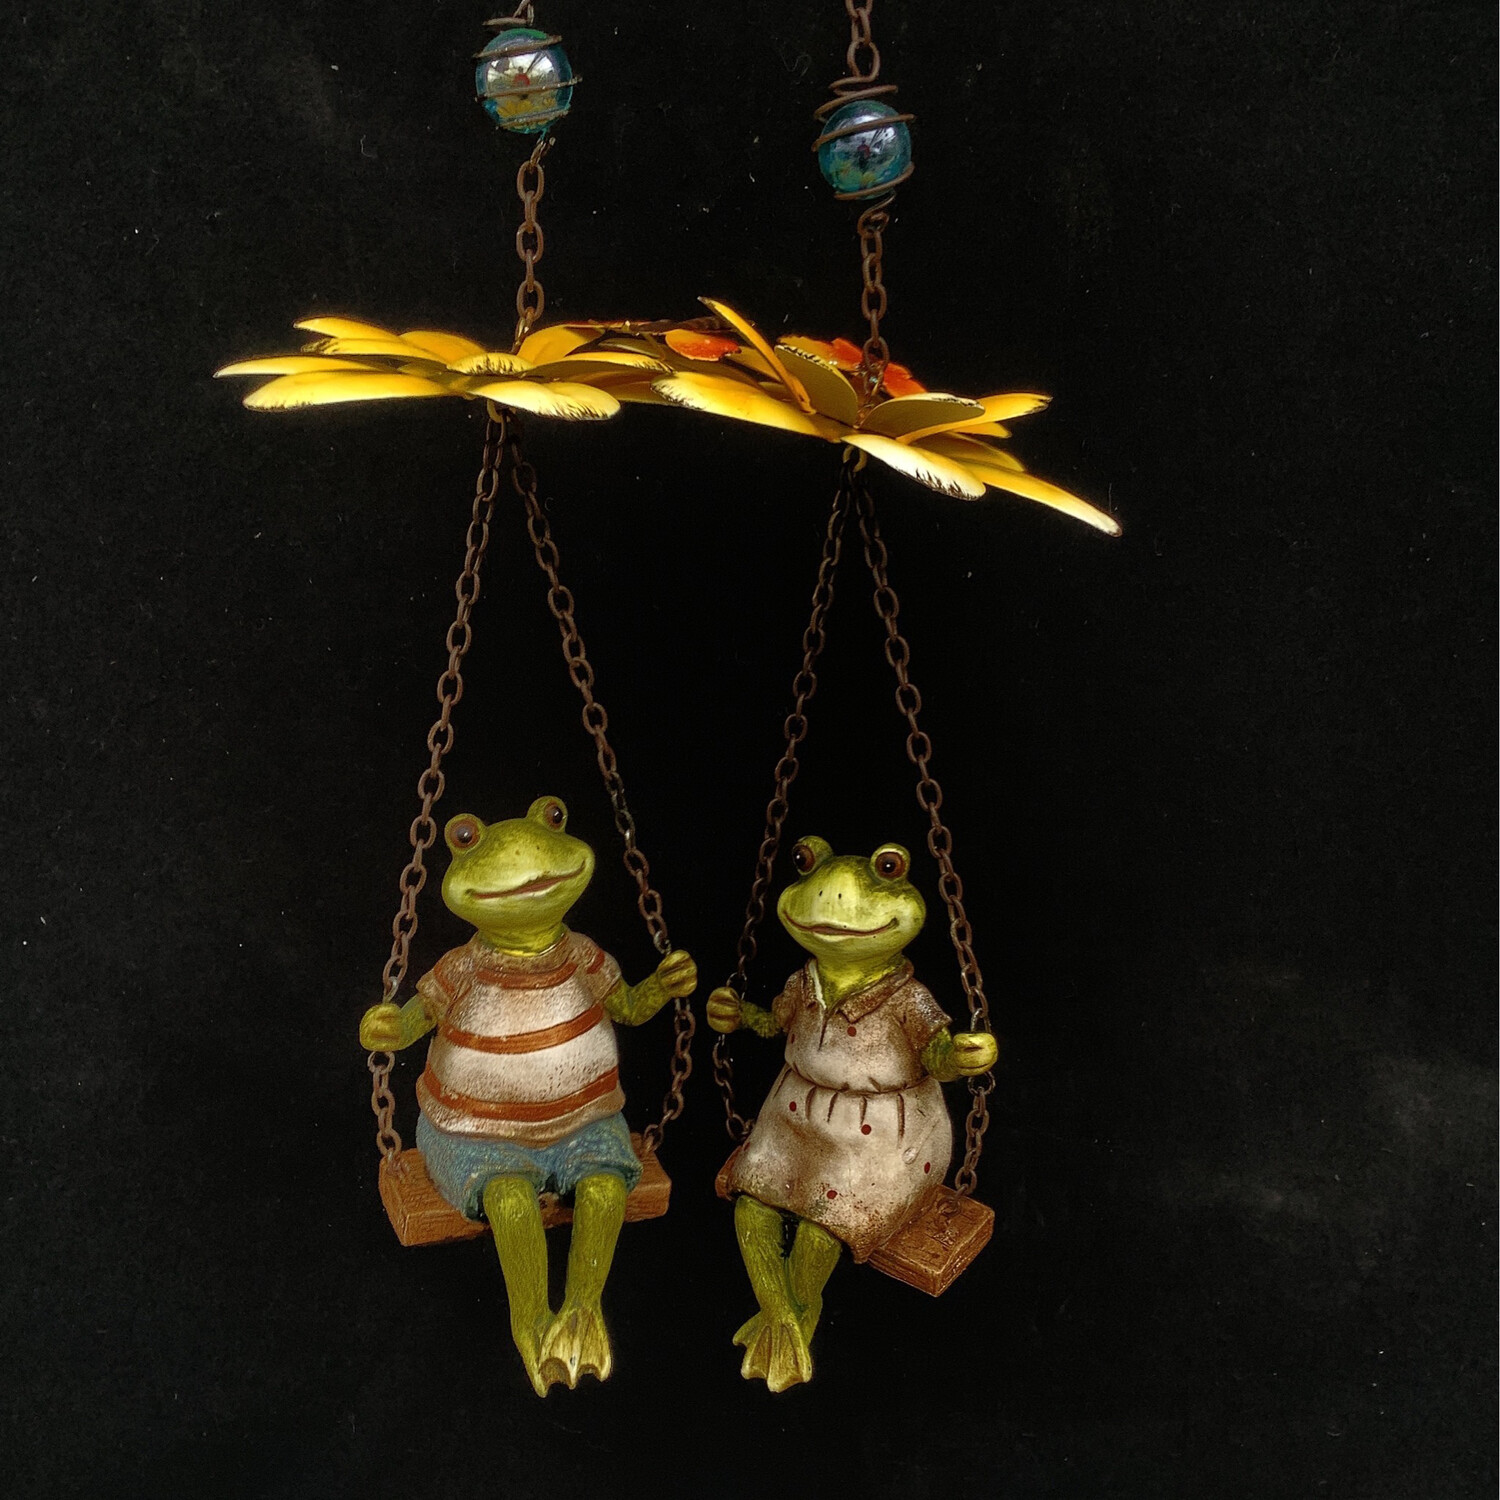 Mr. & Mrs. Frog Hanging Ornament Pair